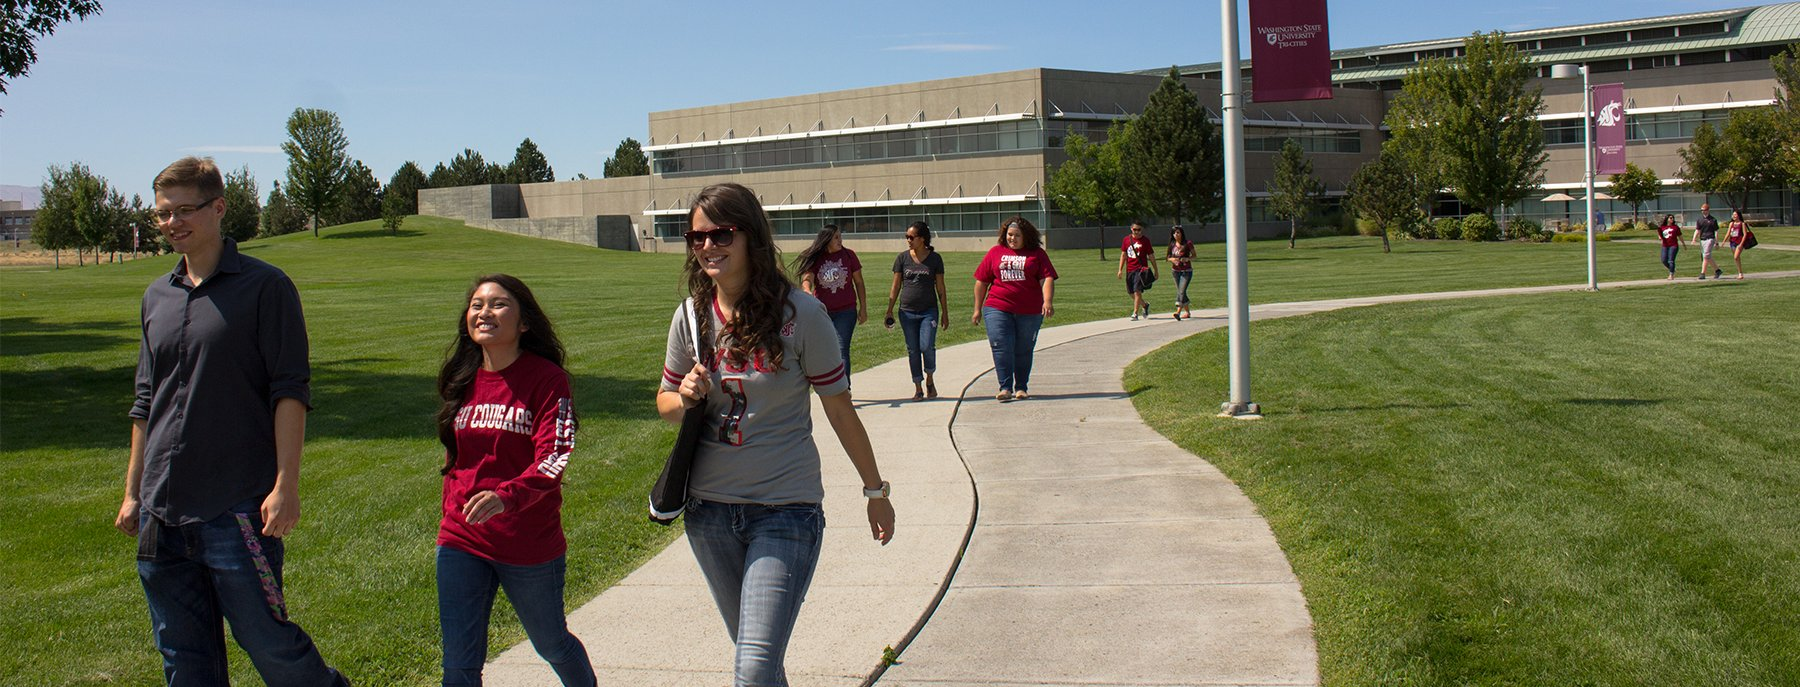 students walking on a path